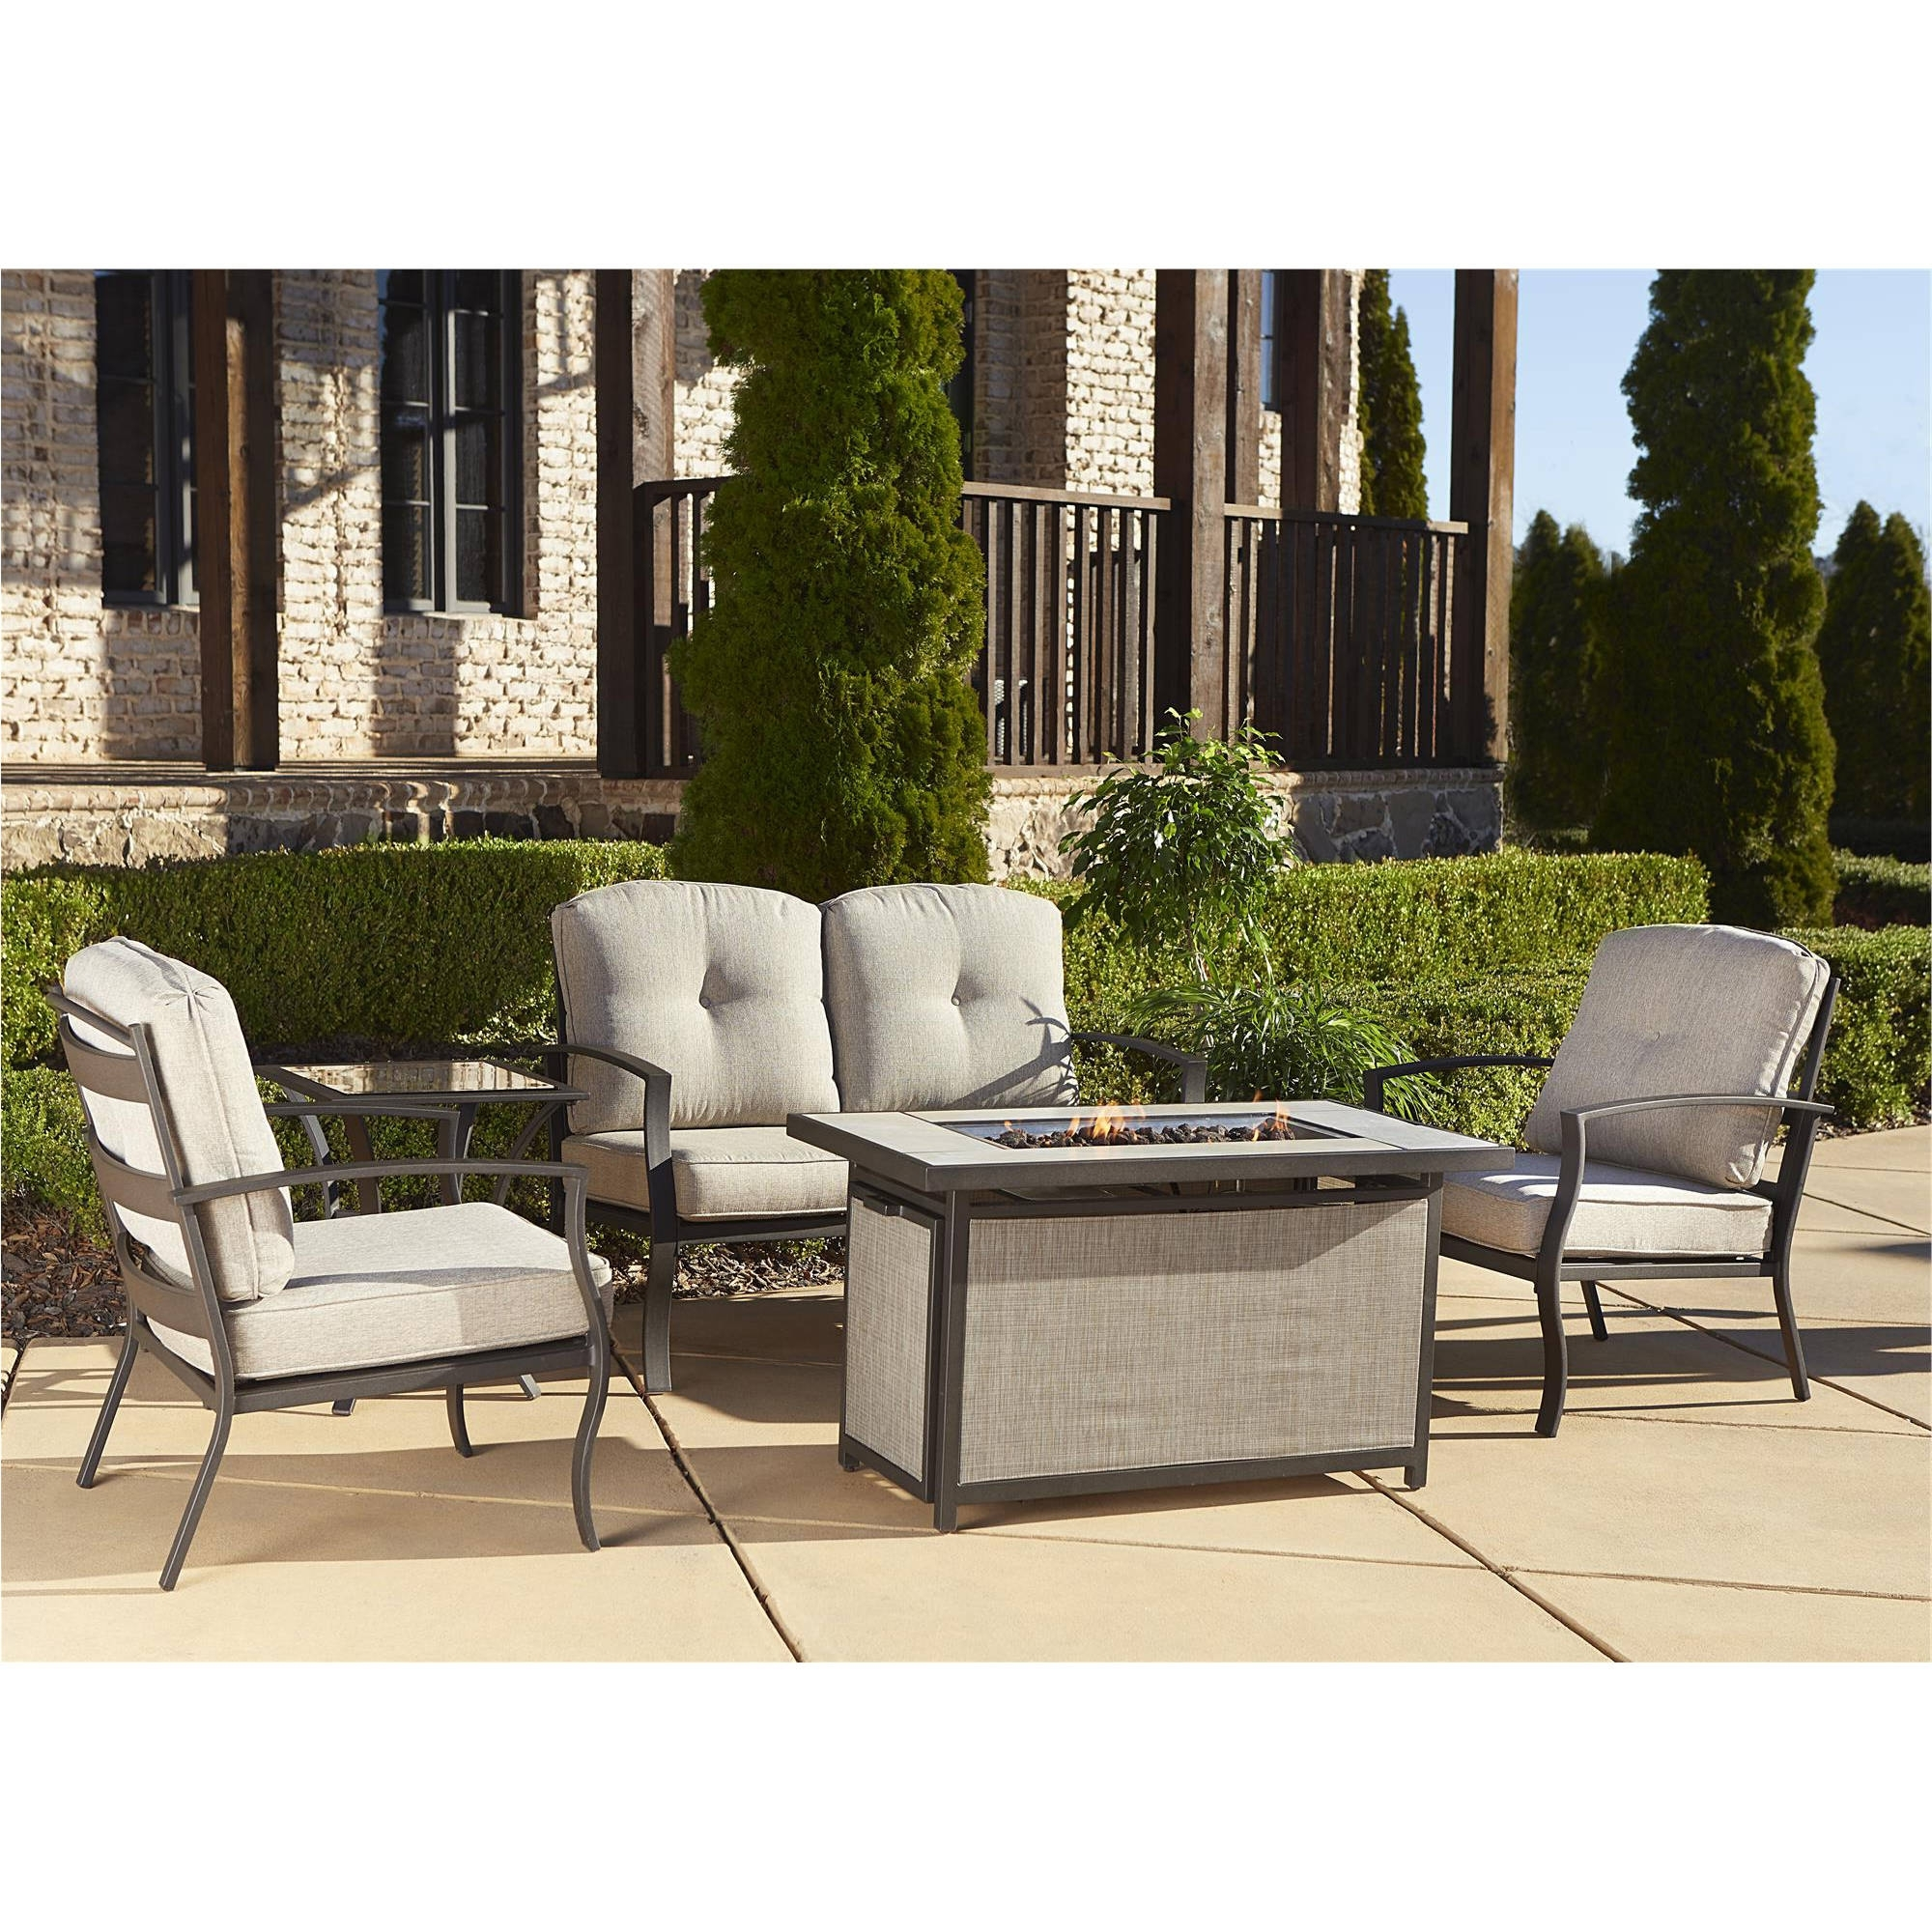 Cosco Outdoor 5 Piece Serene Ridge Aluminum Patio Furniture For Current Patio Furniture Conversation Sets With Fire Pit (View 19 of 20)